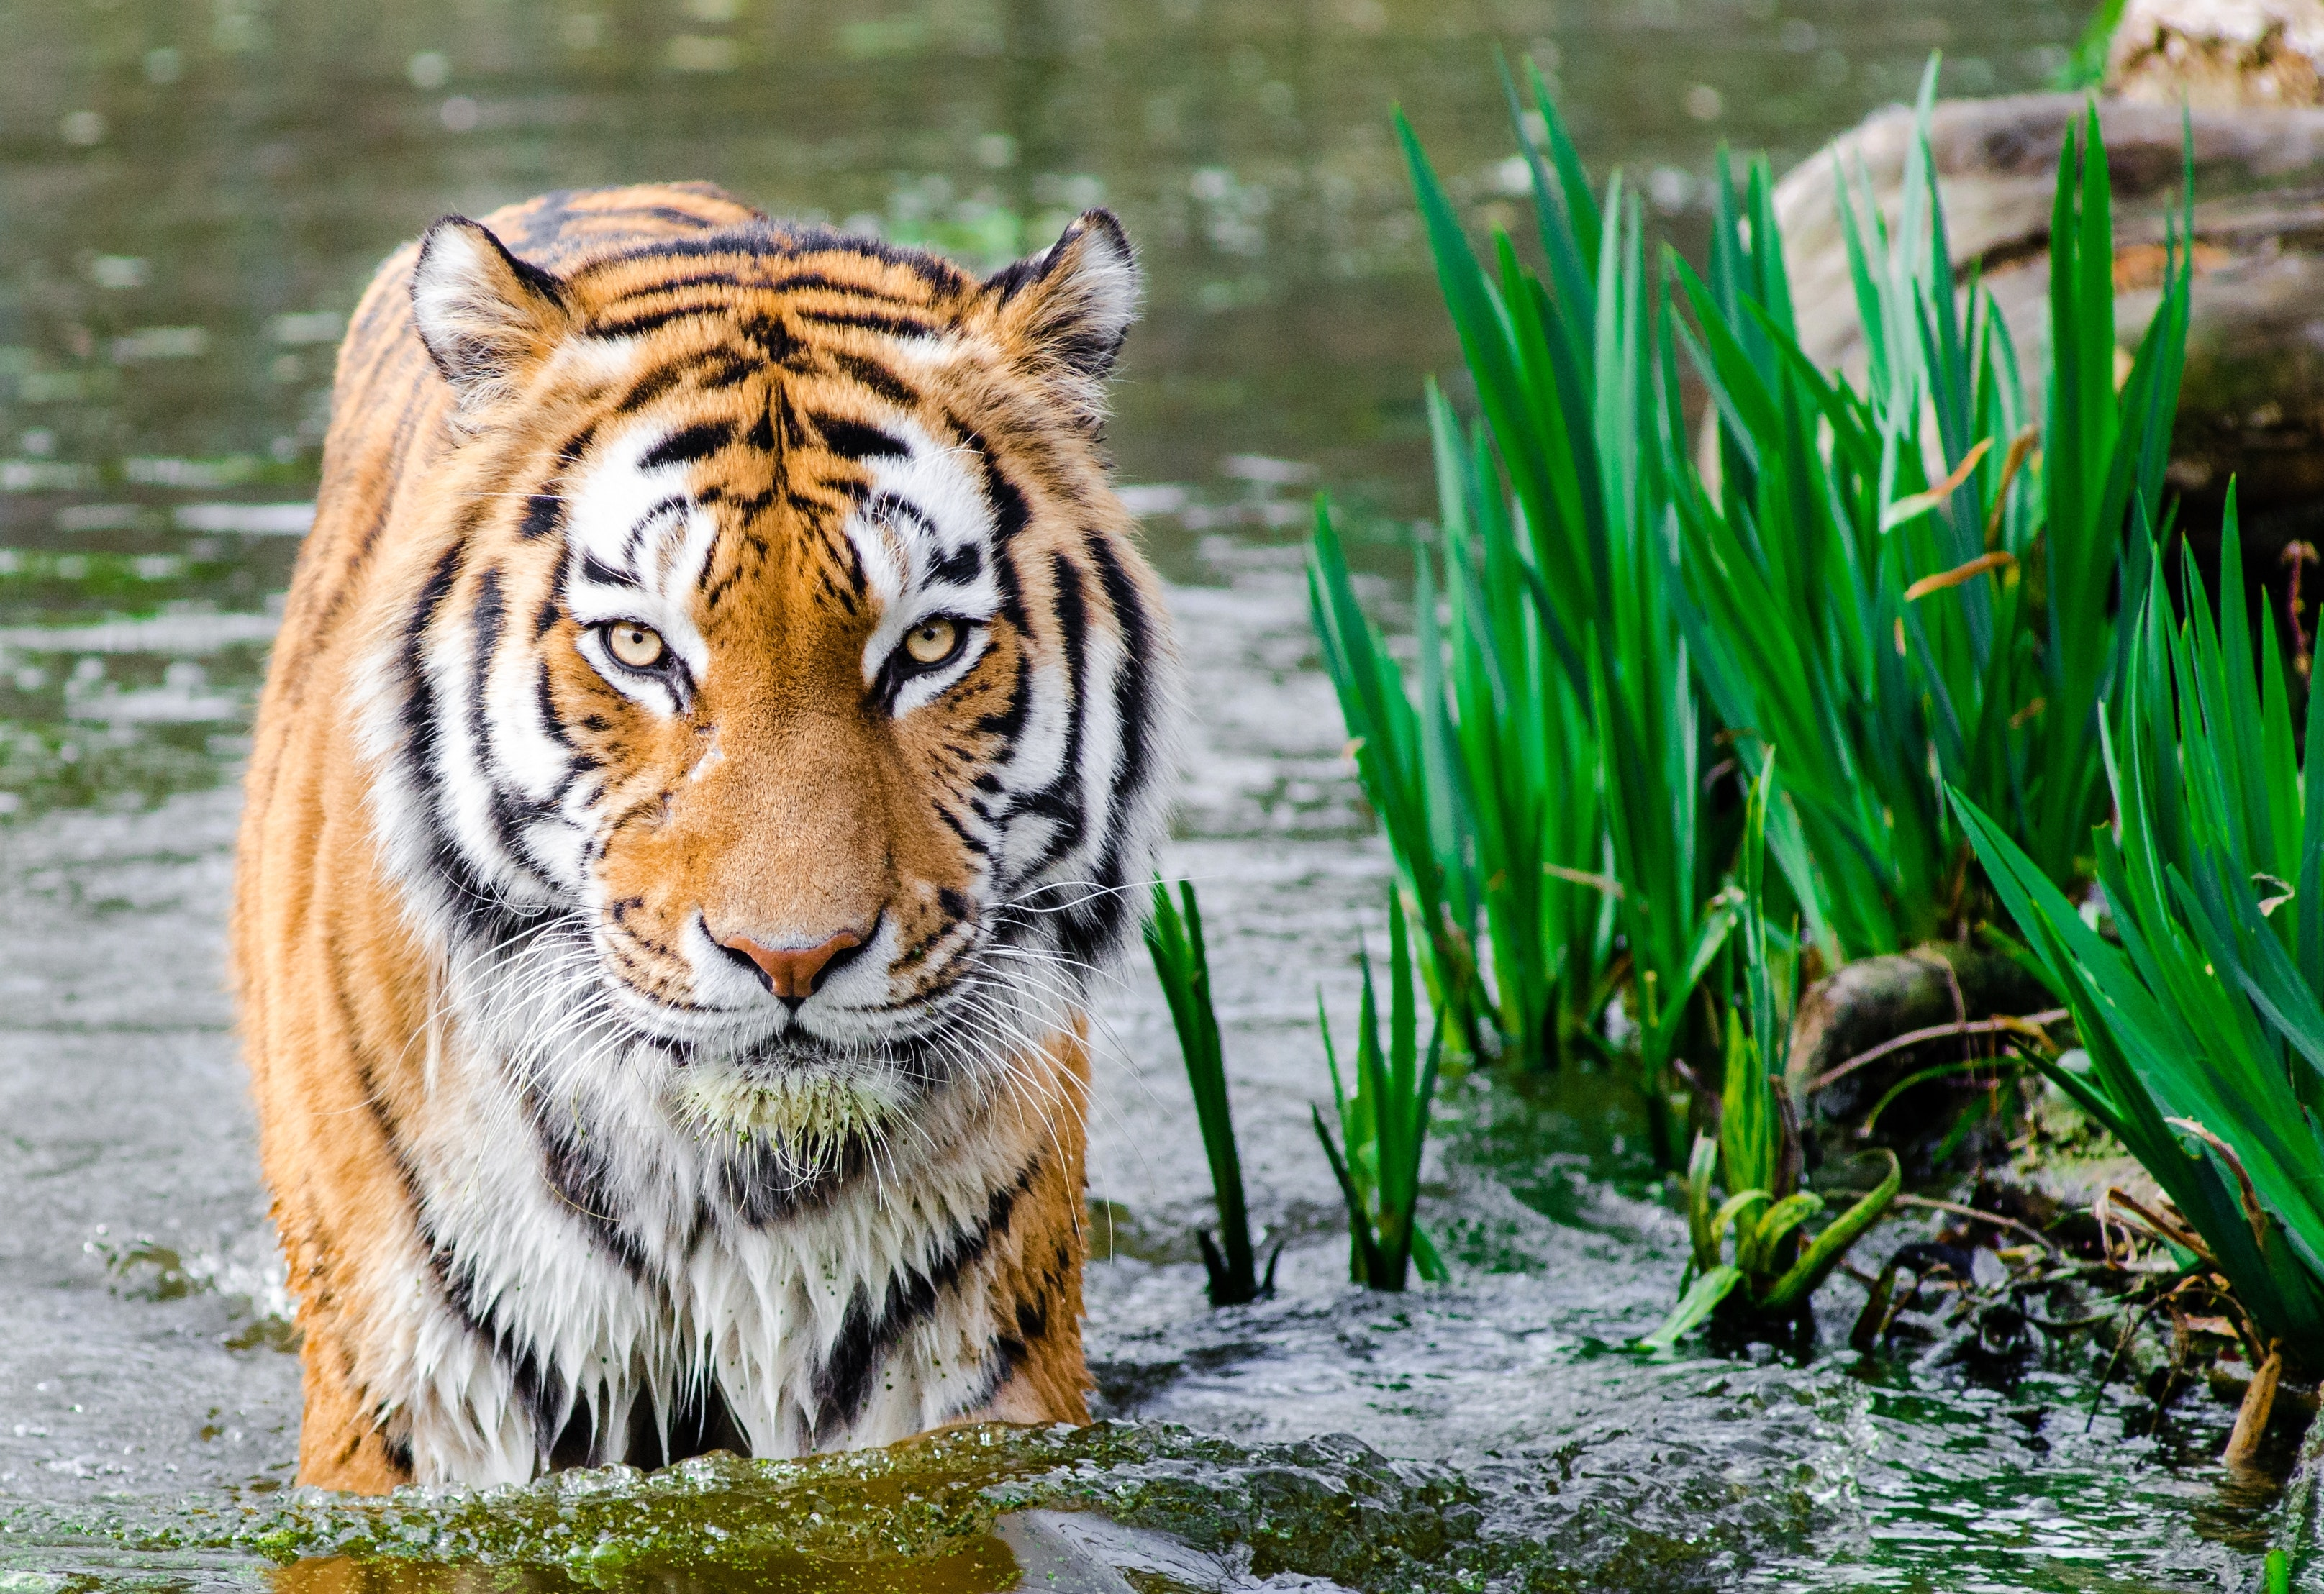 Bengal Tiger Half Soak Body on Water during Daytime by Flickr